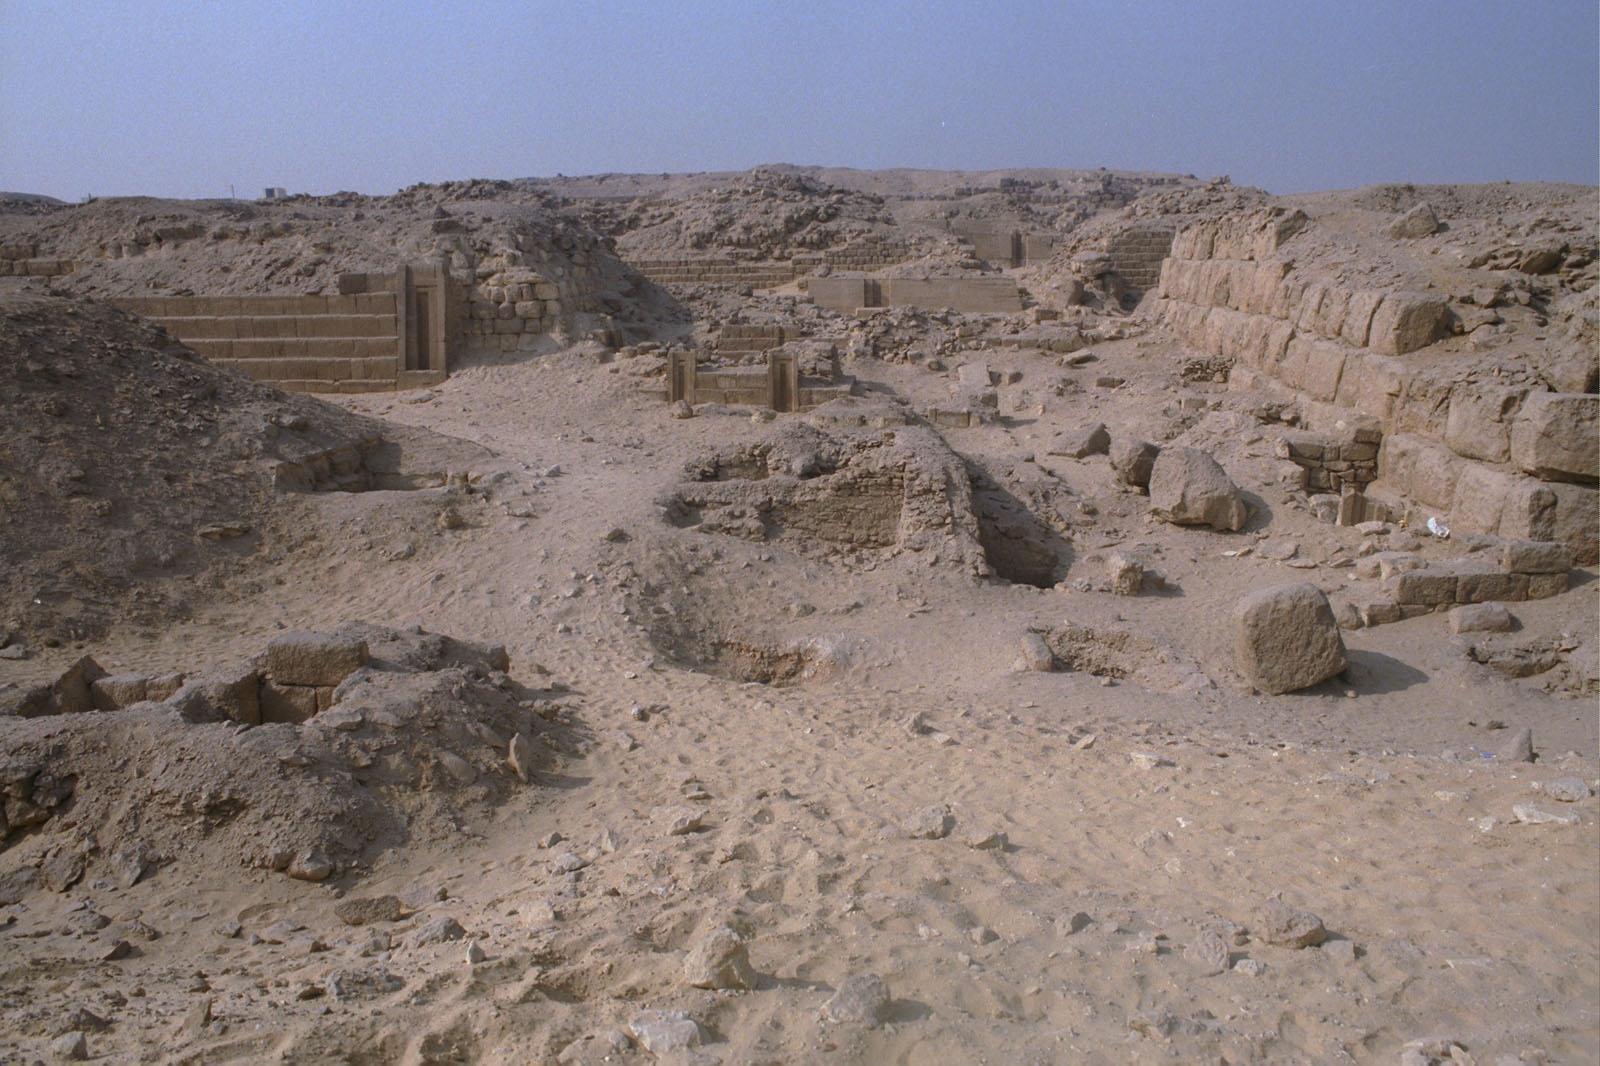 Western Cemetery: Site: Giza; View: G 2223, G 2154, G 2151, G 2225, G 2157, G 2170, G 2150, G 2154a, G 2156', G 2139, G 2138